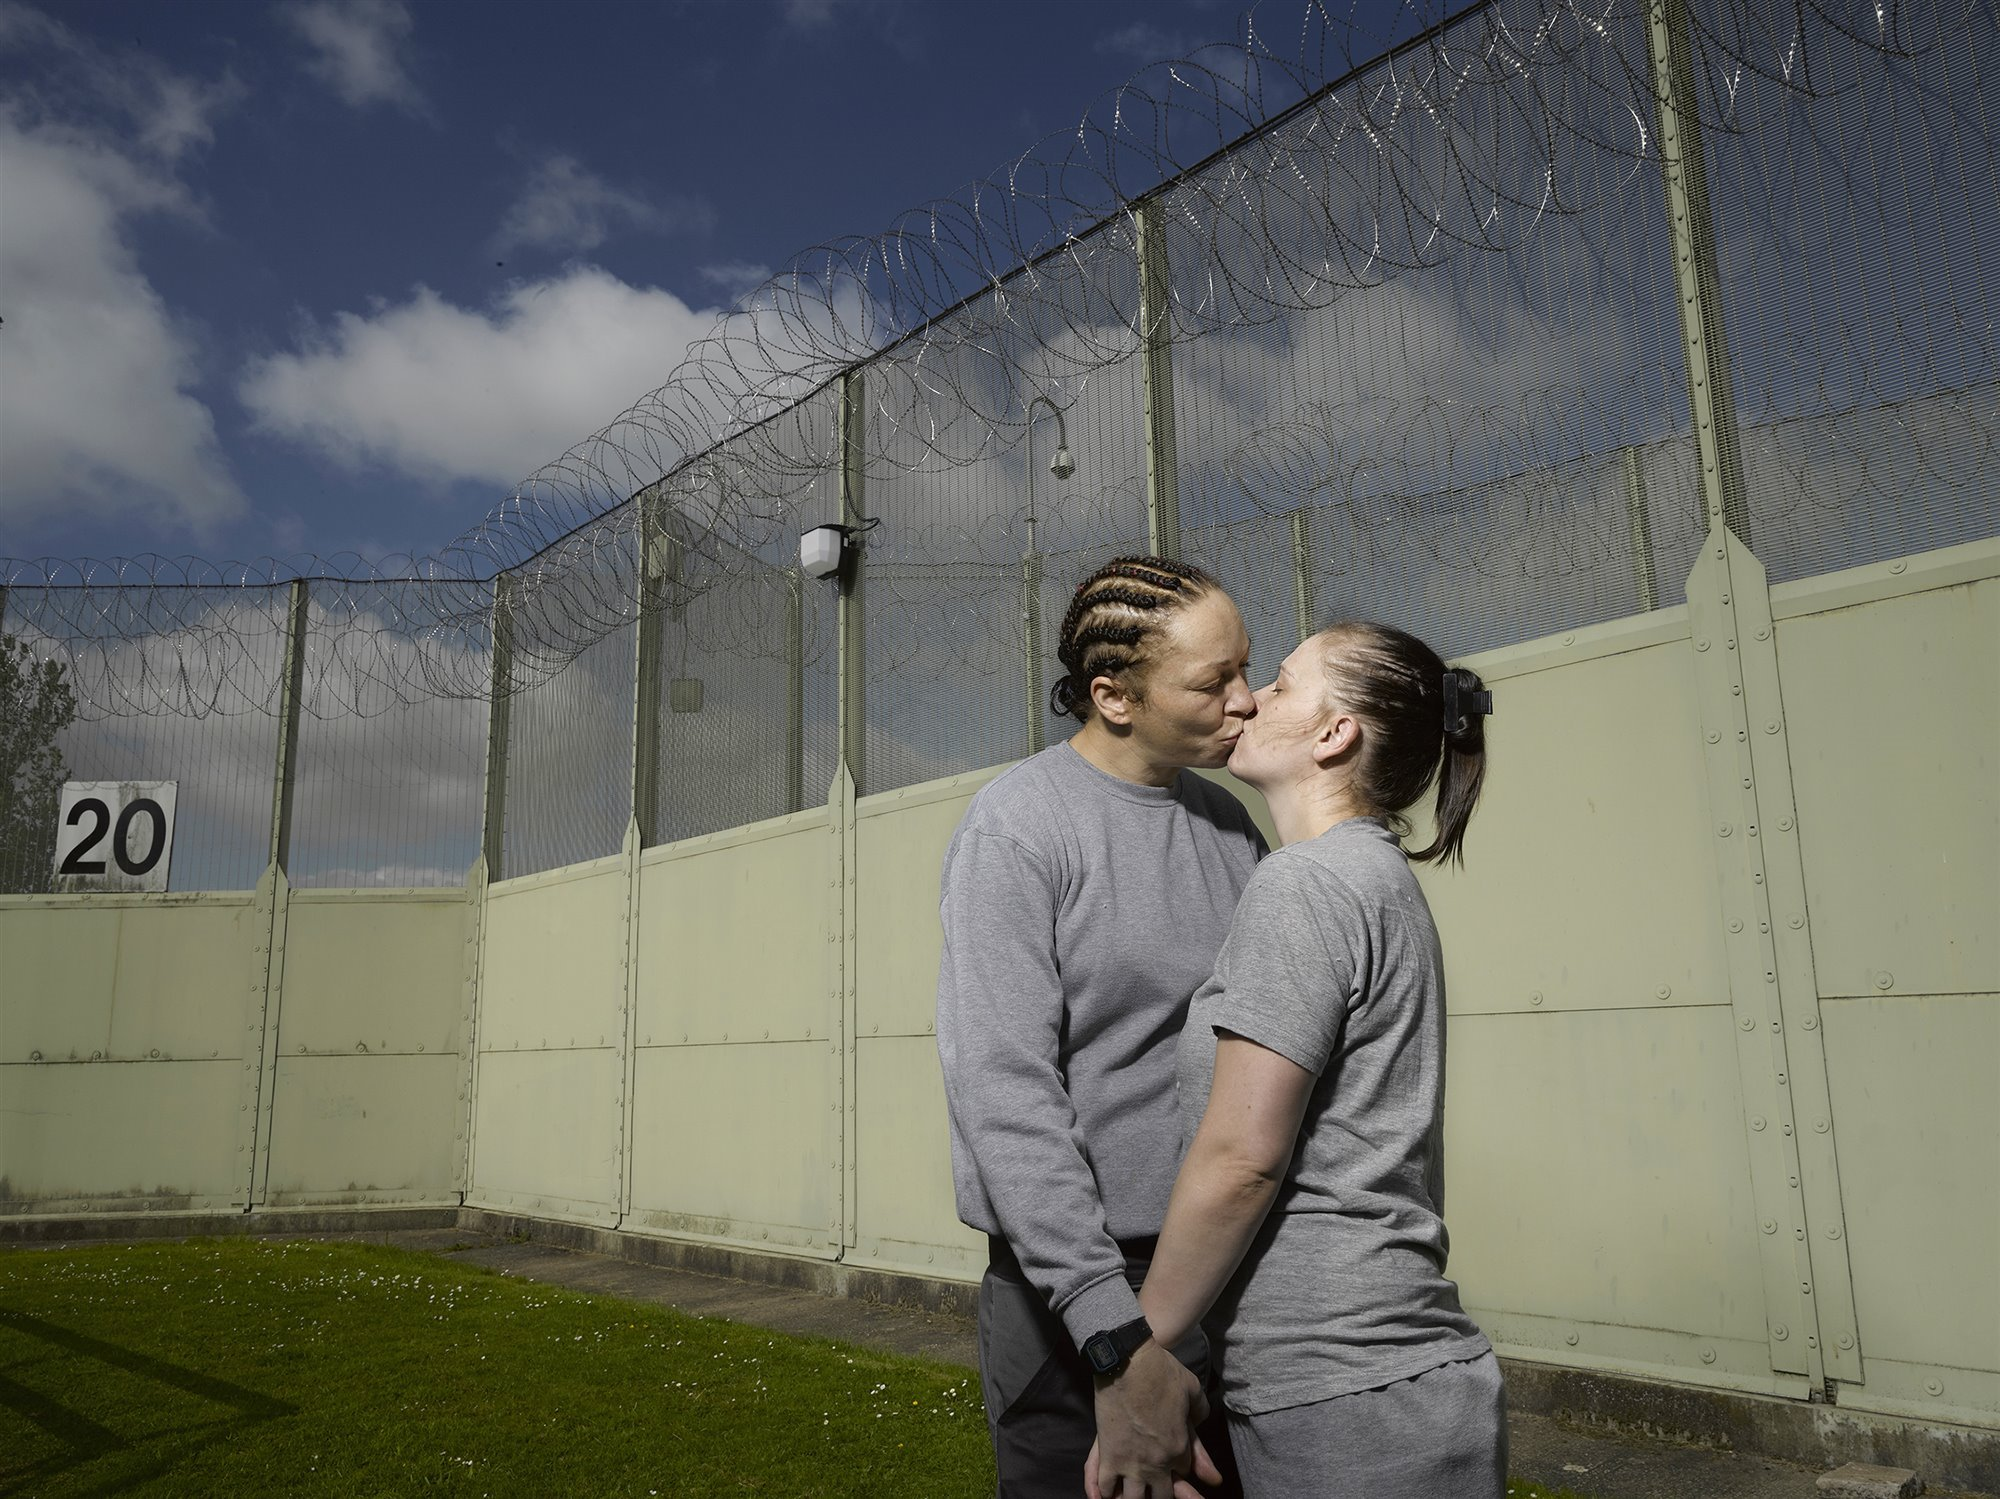 Laura & Katie meet at the prison fence